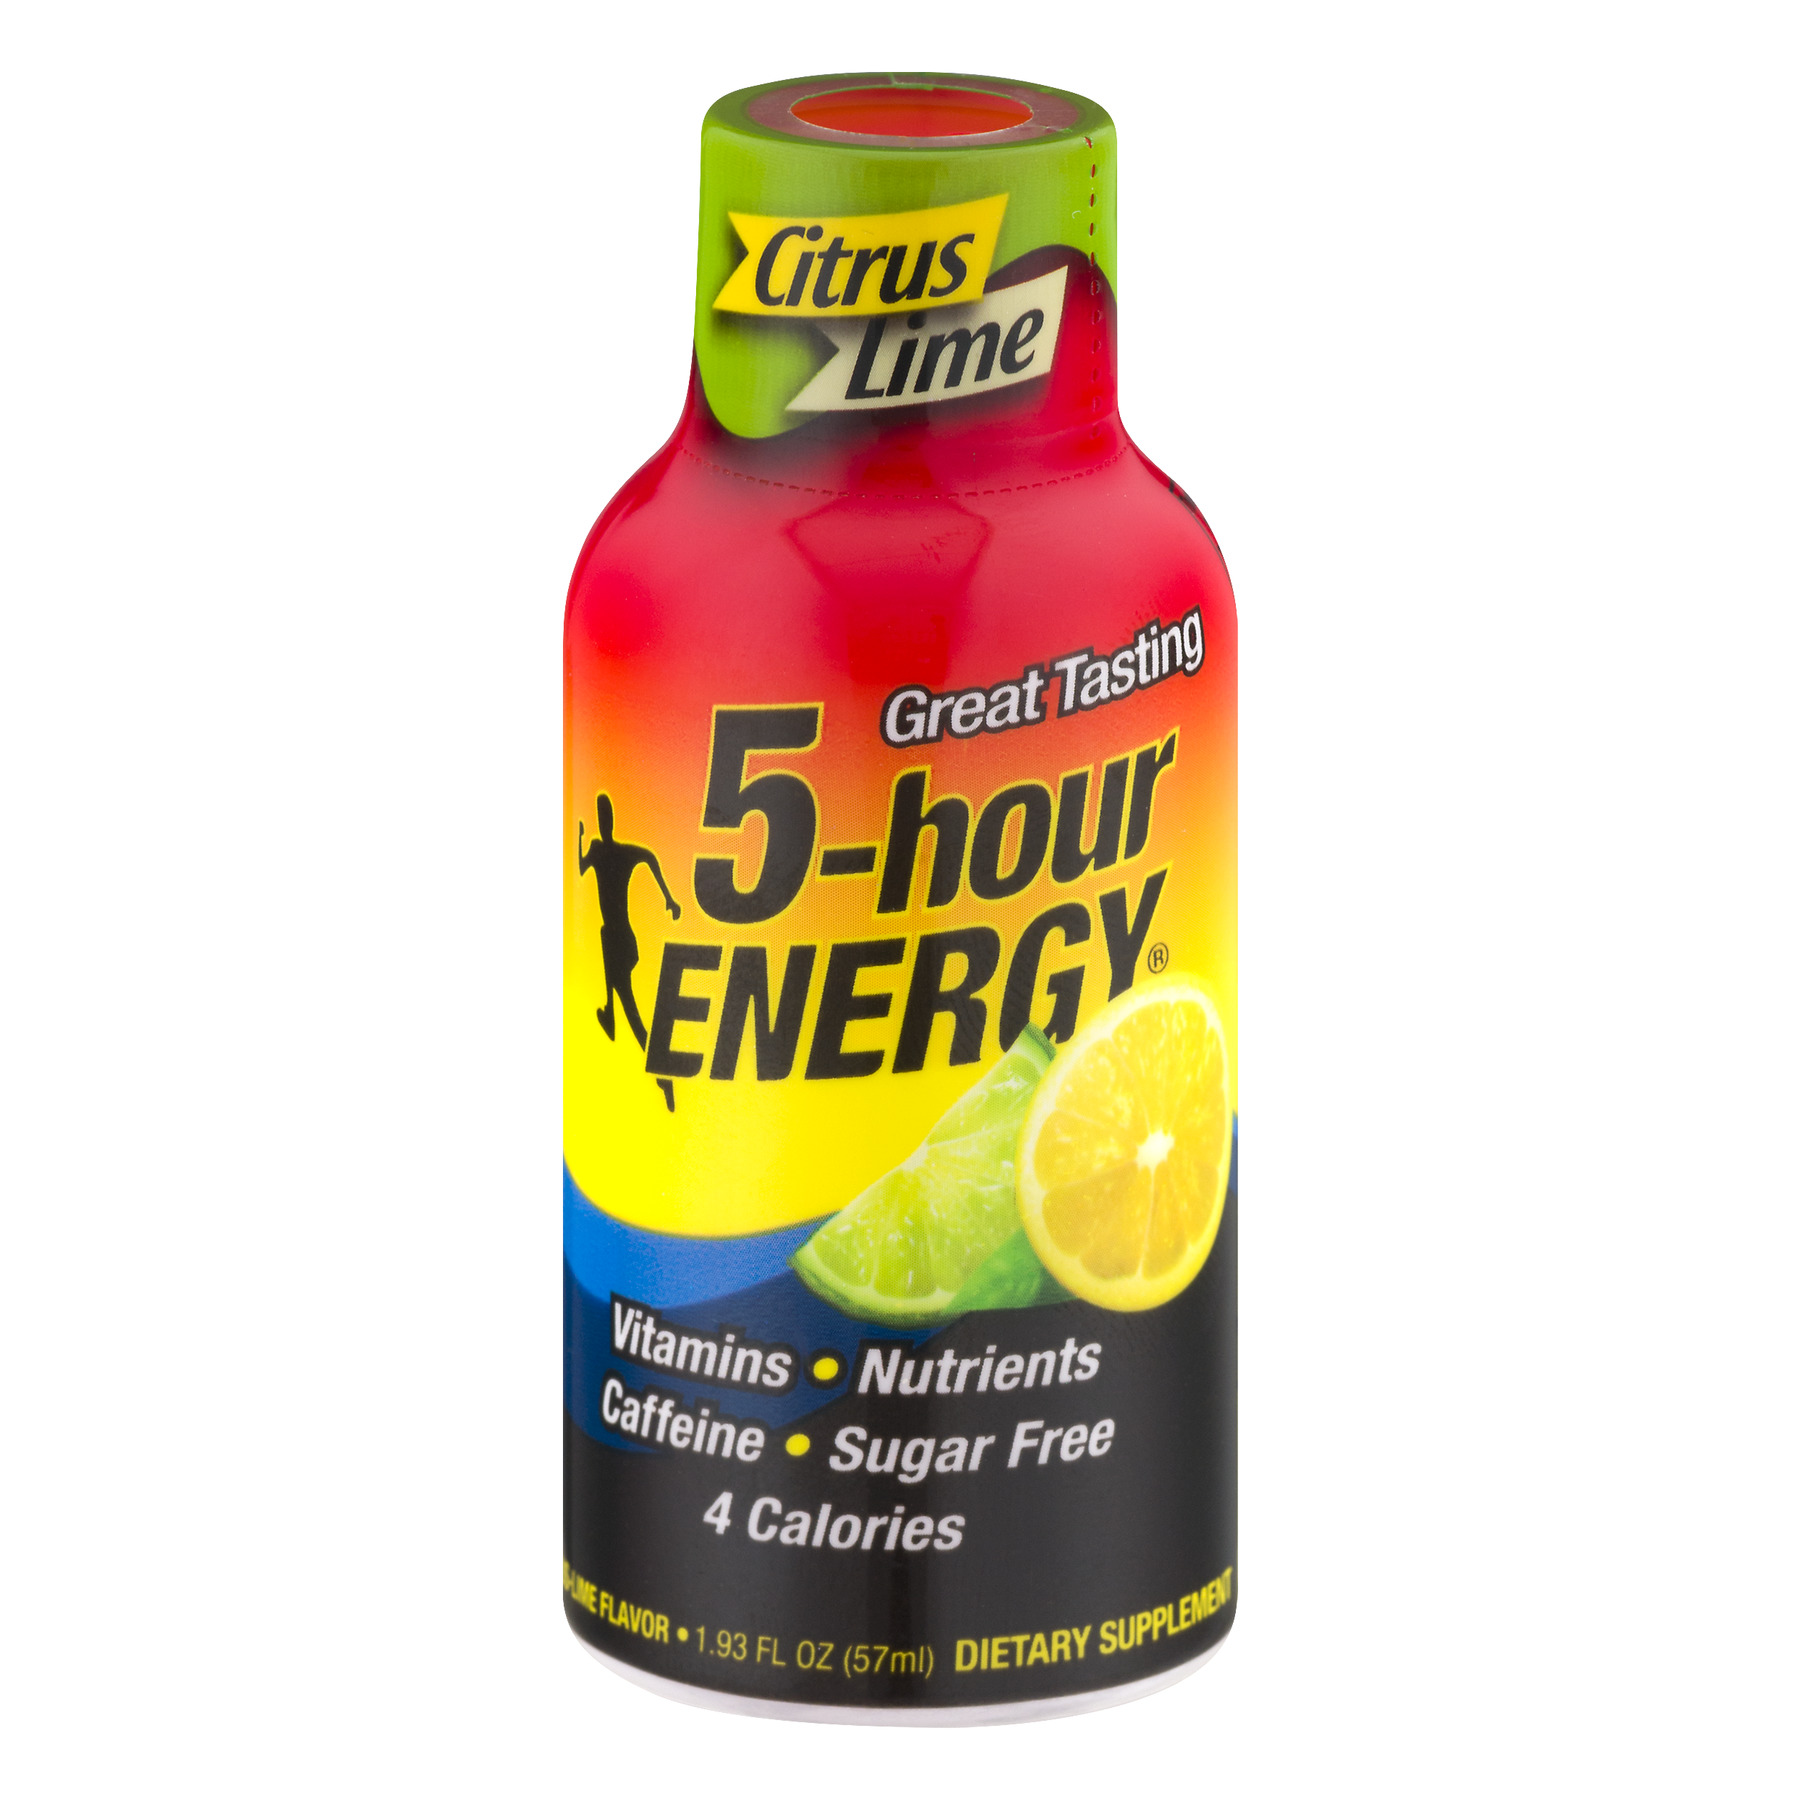 5-Hour Energy Citrus Lime, 1.93 FL OZ